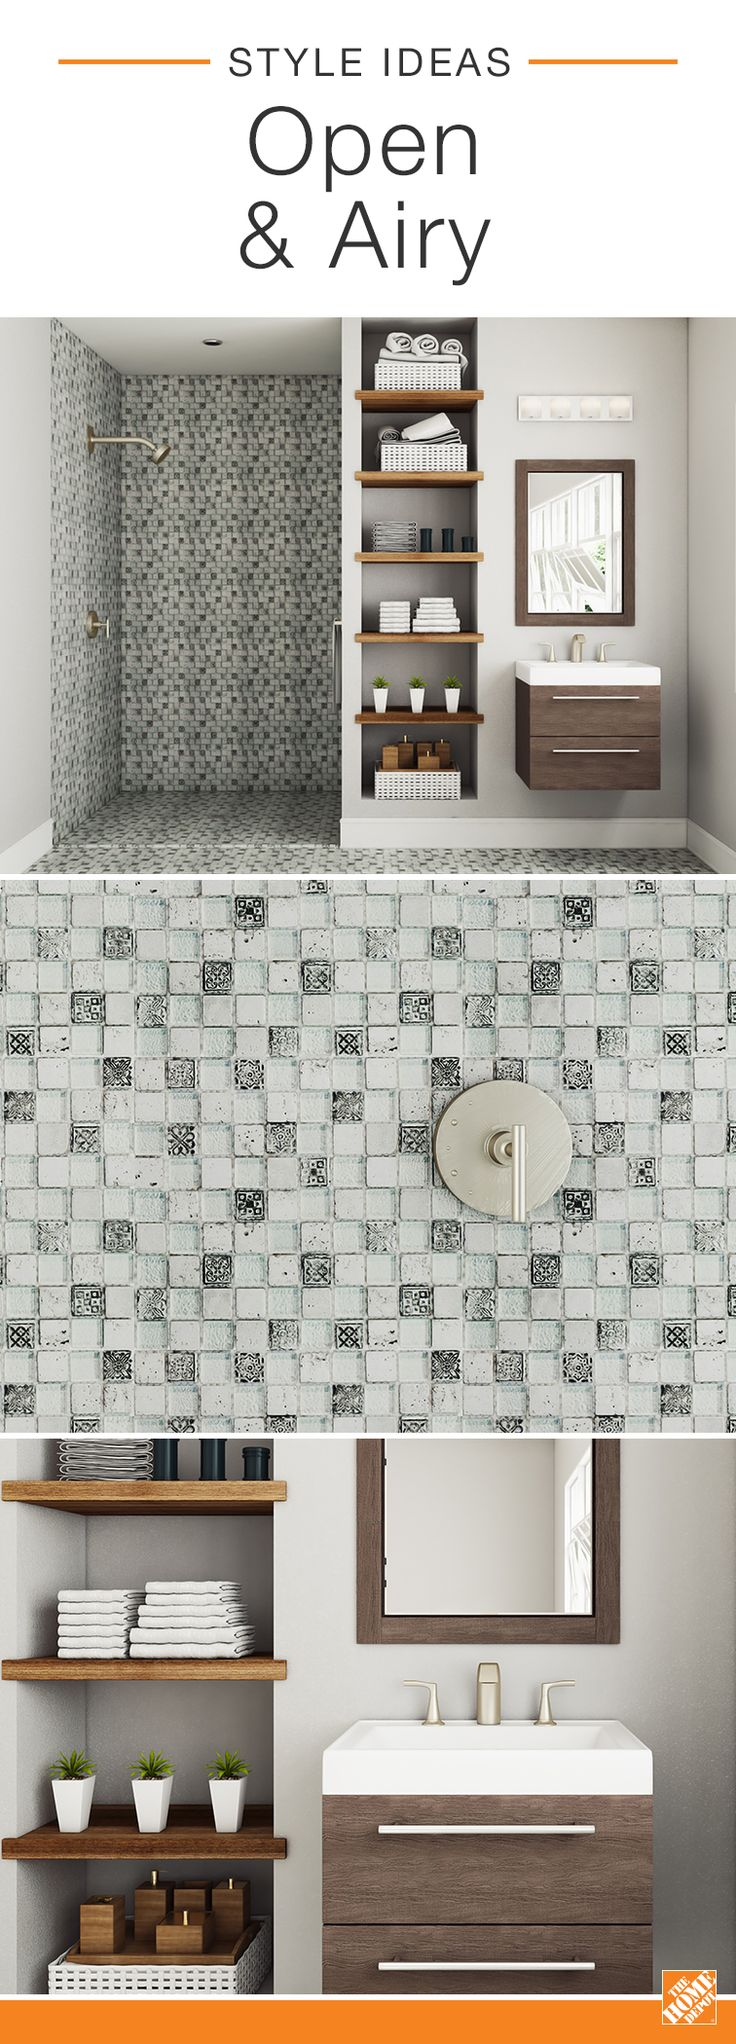 17 Best images about Bathroom Design Ideas on Pinterest | Toilets ...